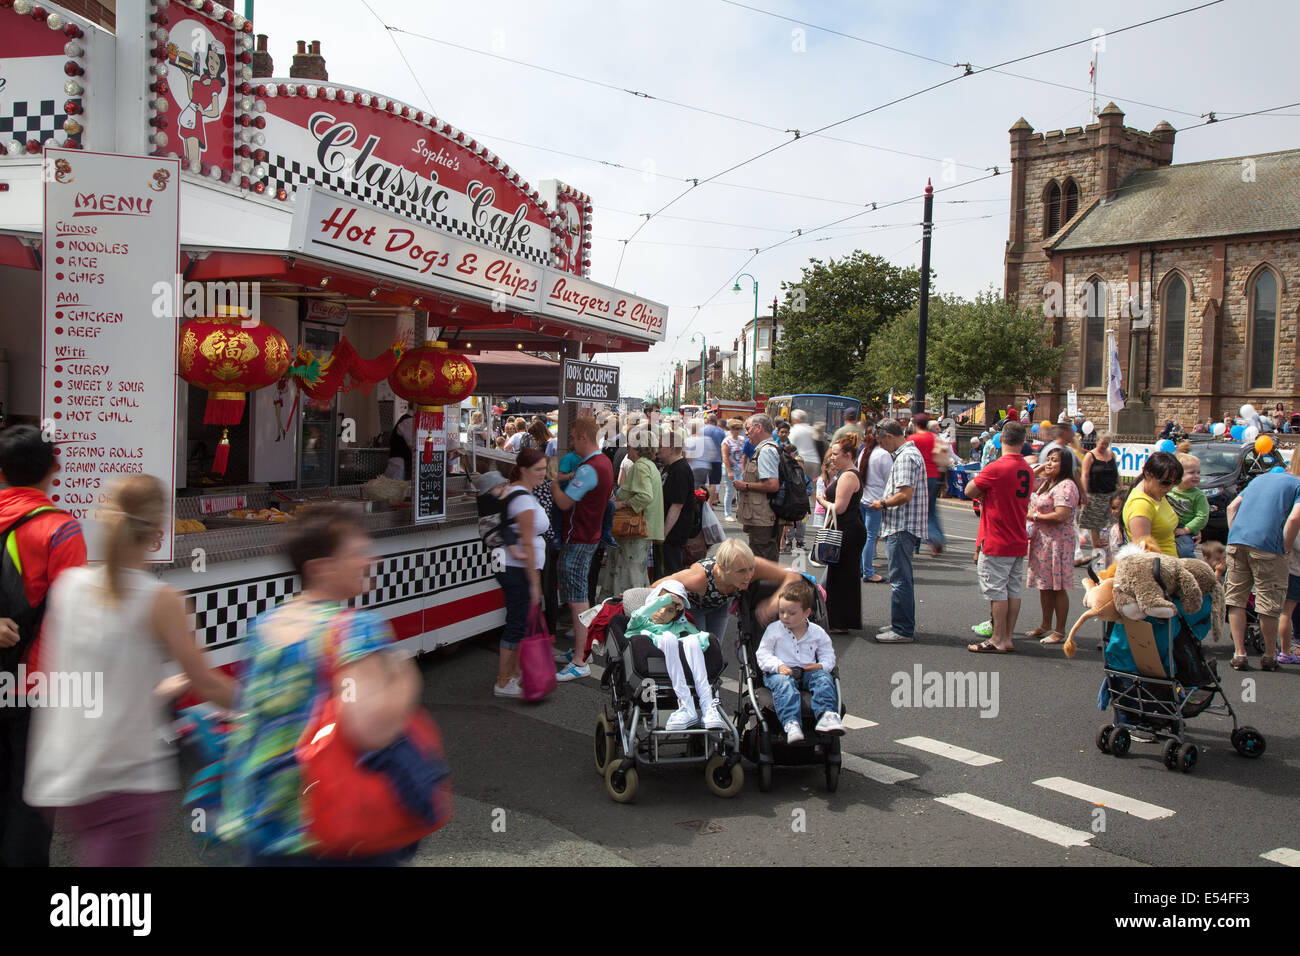 Fleetwood, Lancashire, 20th July, 2014. Classic Cafe at Fleetwood Festival of Transport. This event took place for - Stock Image